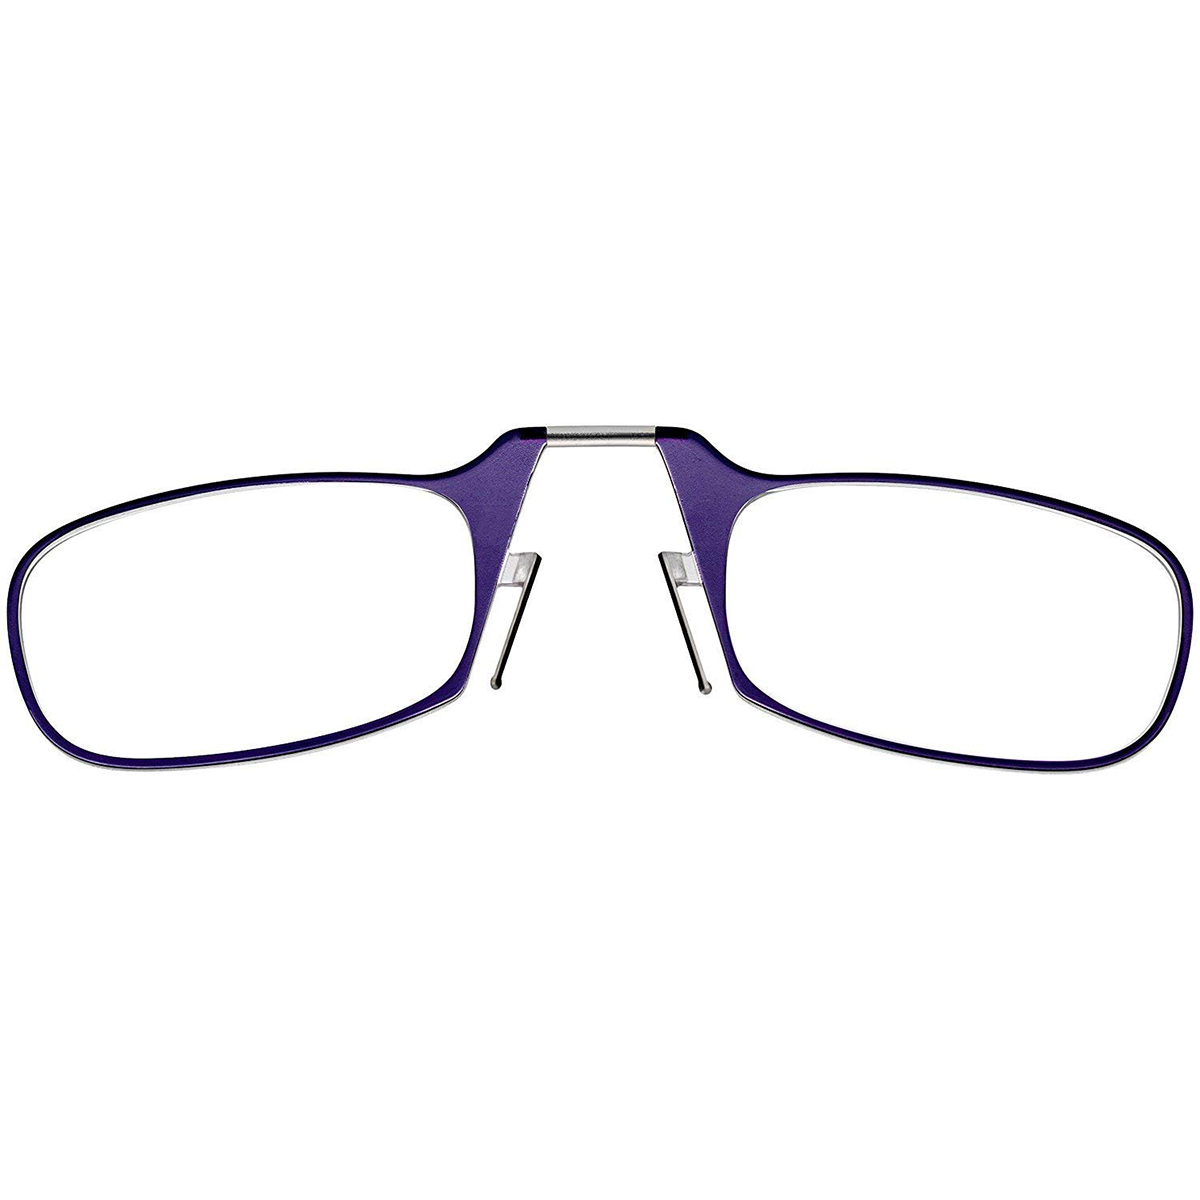 ThinOptics-Secure-Fit-Armless-Ultralight-Reading-Glasses-with-Universal-Pod-Case thumbnail 24